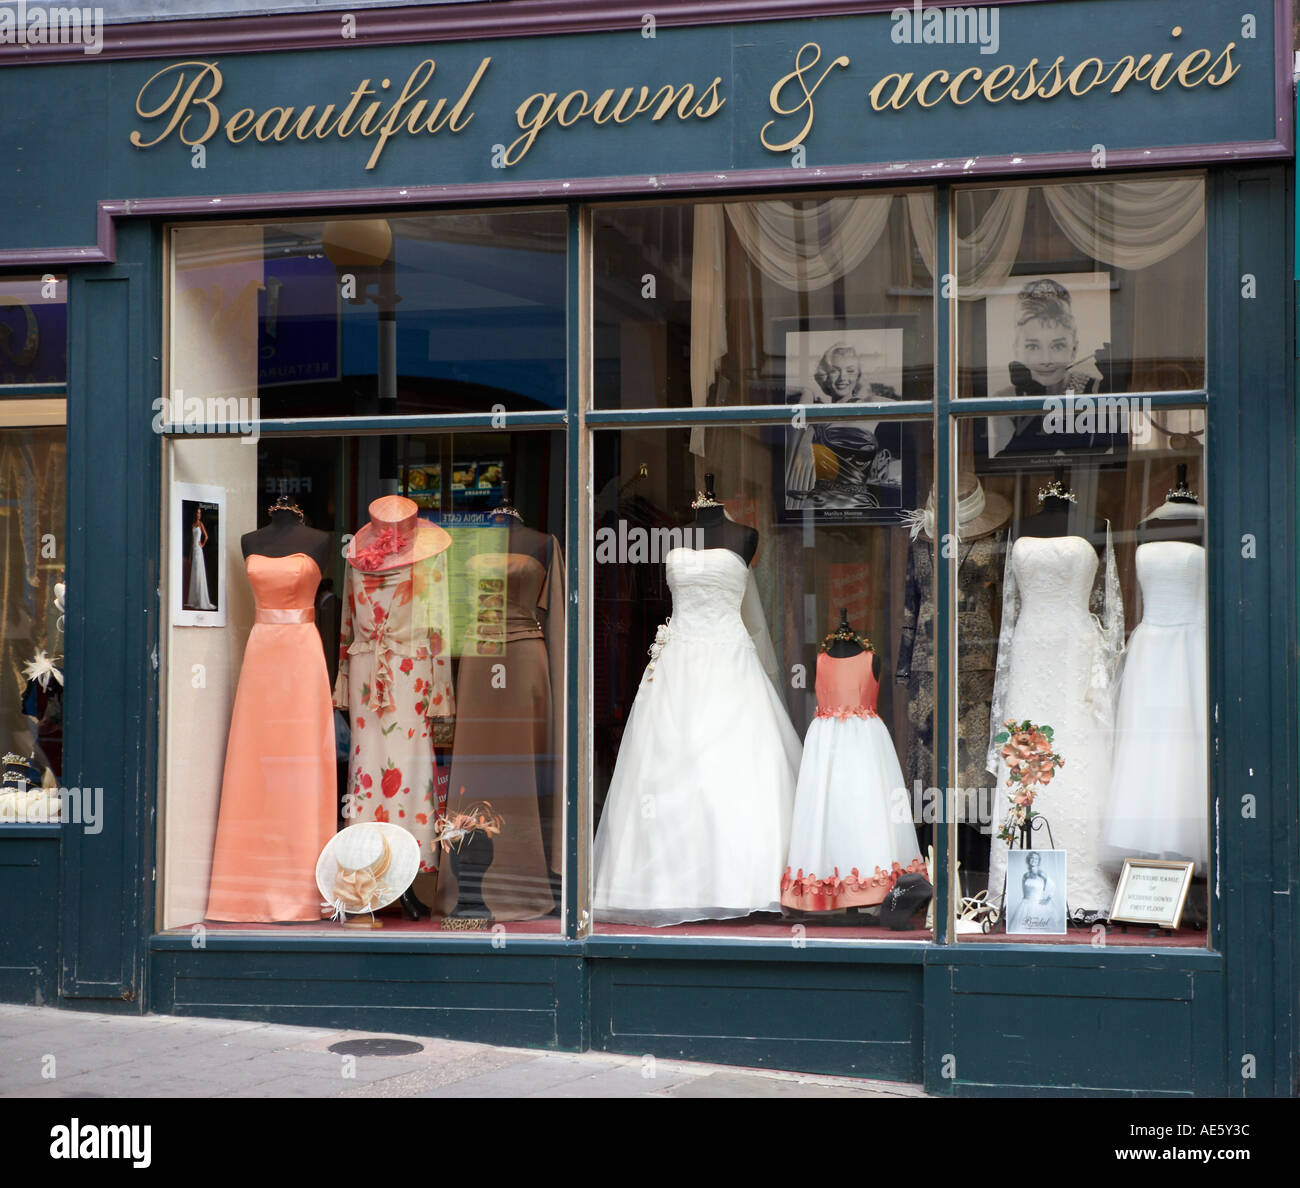 5887af5a7 BRIDAL GOWN ON MANNEQUIN IN SHOP WINDOW DISPLAY - Stock Image